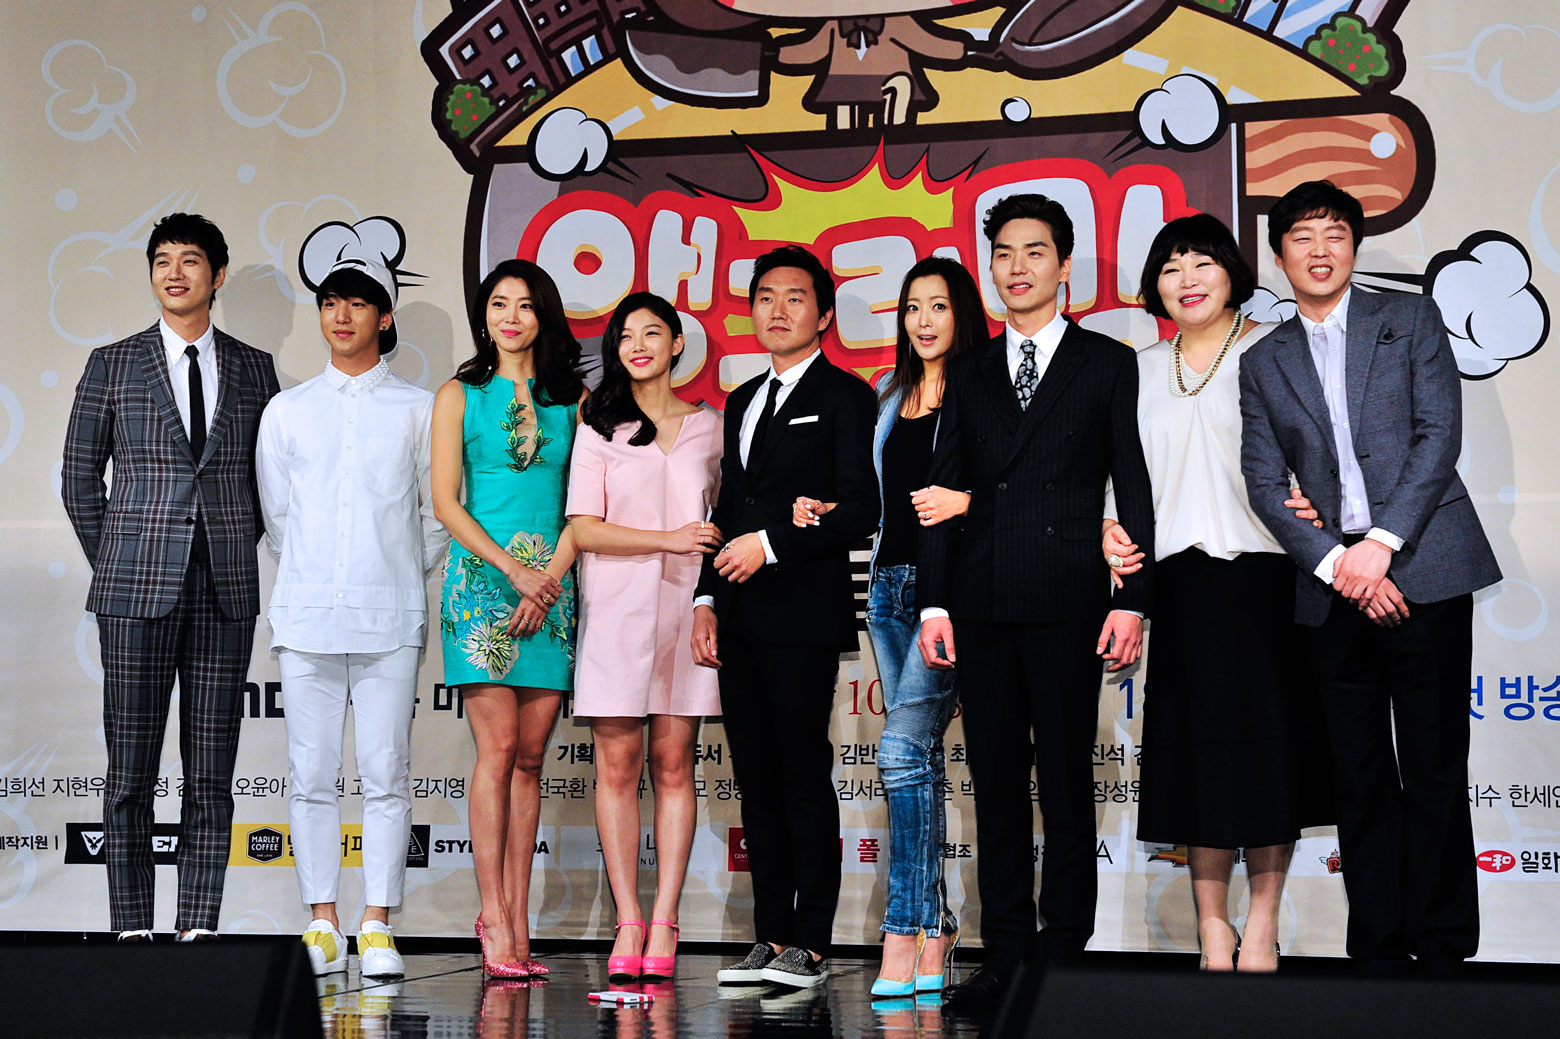 angry mom press conference